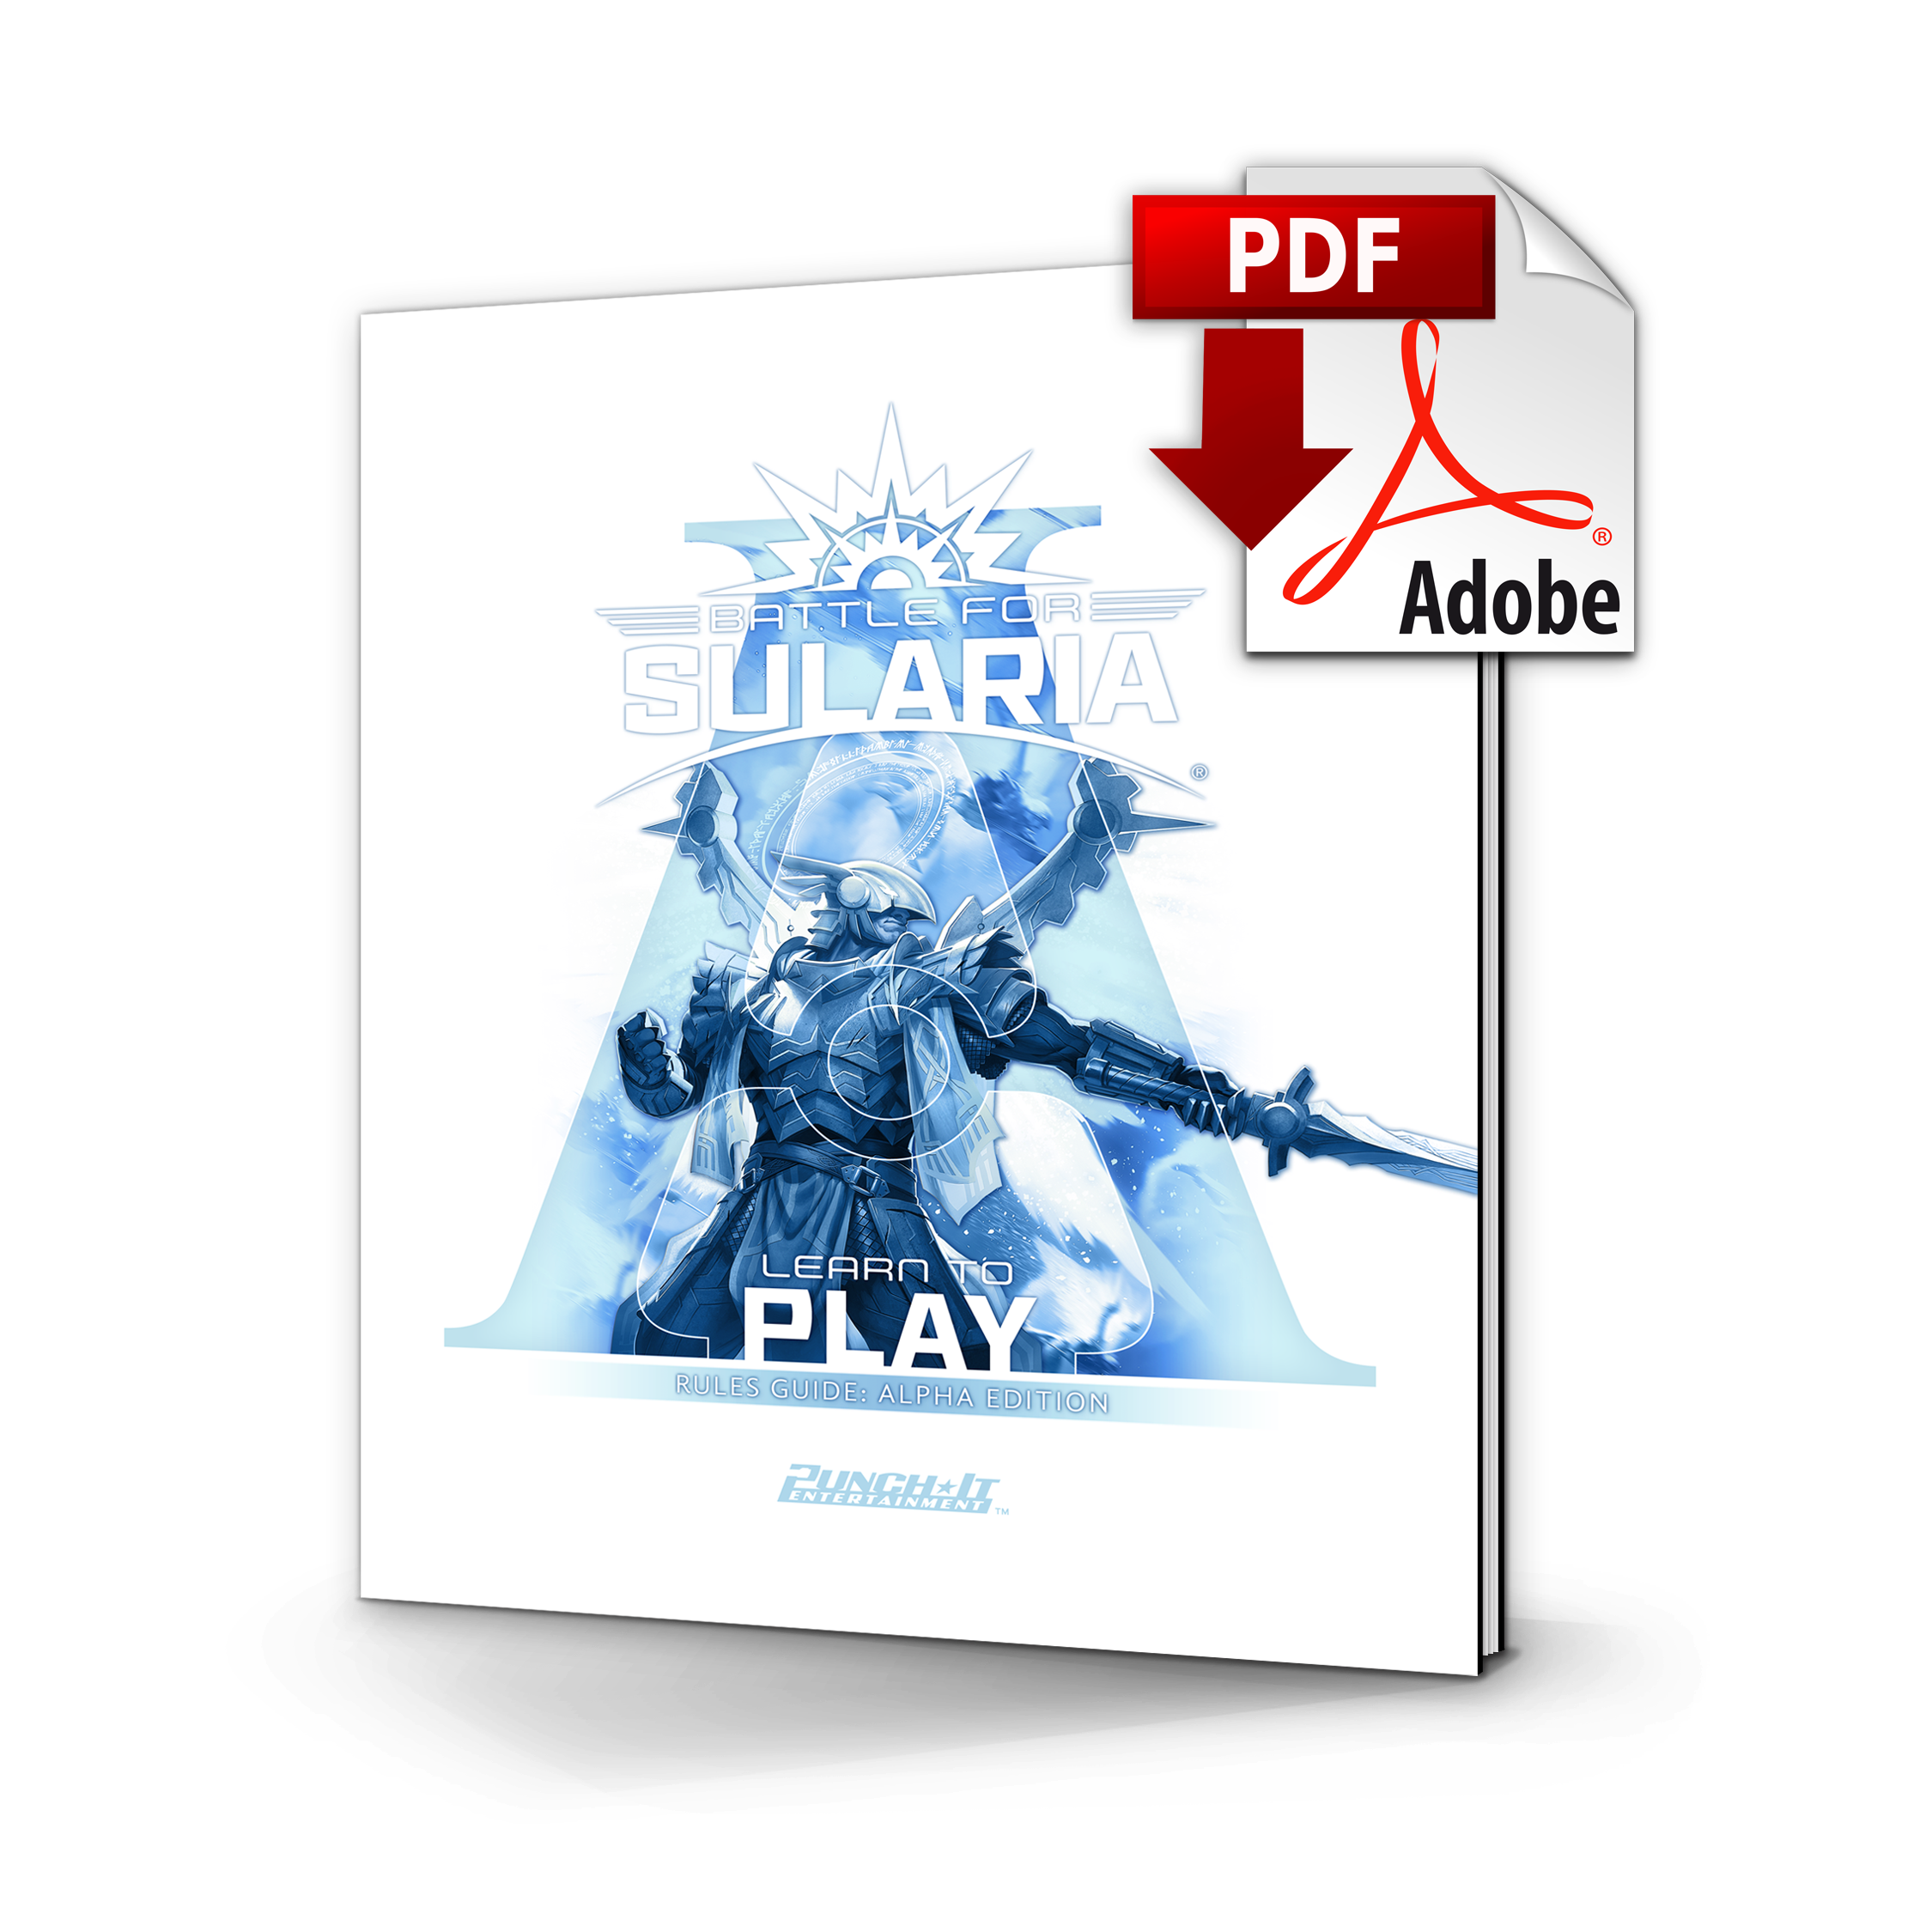 Learn to Play_Preview Image_02.png